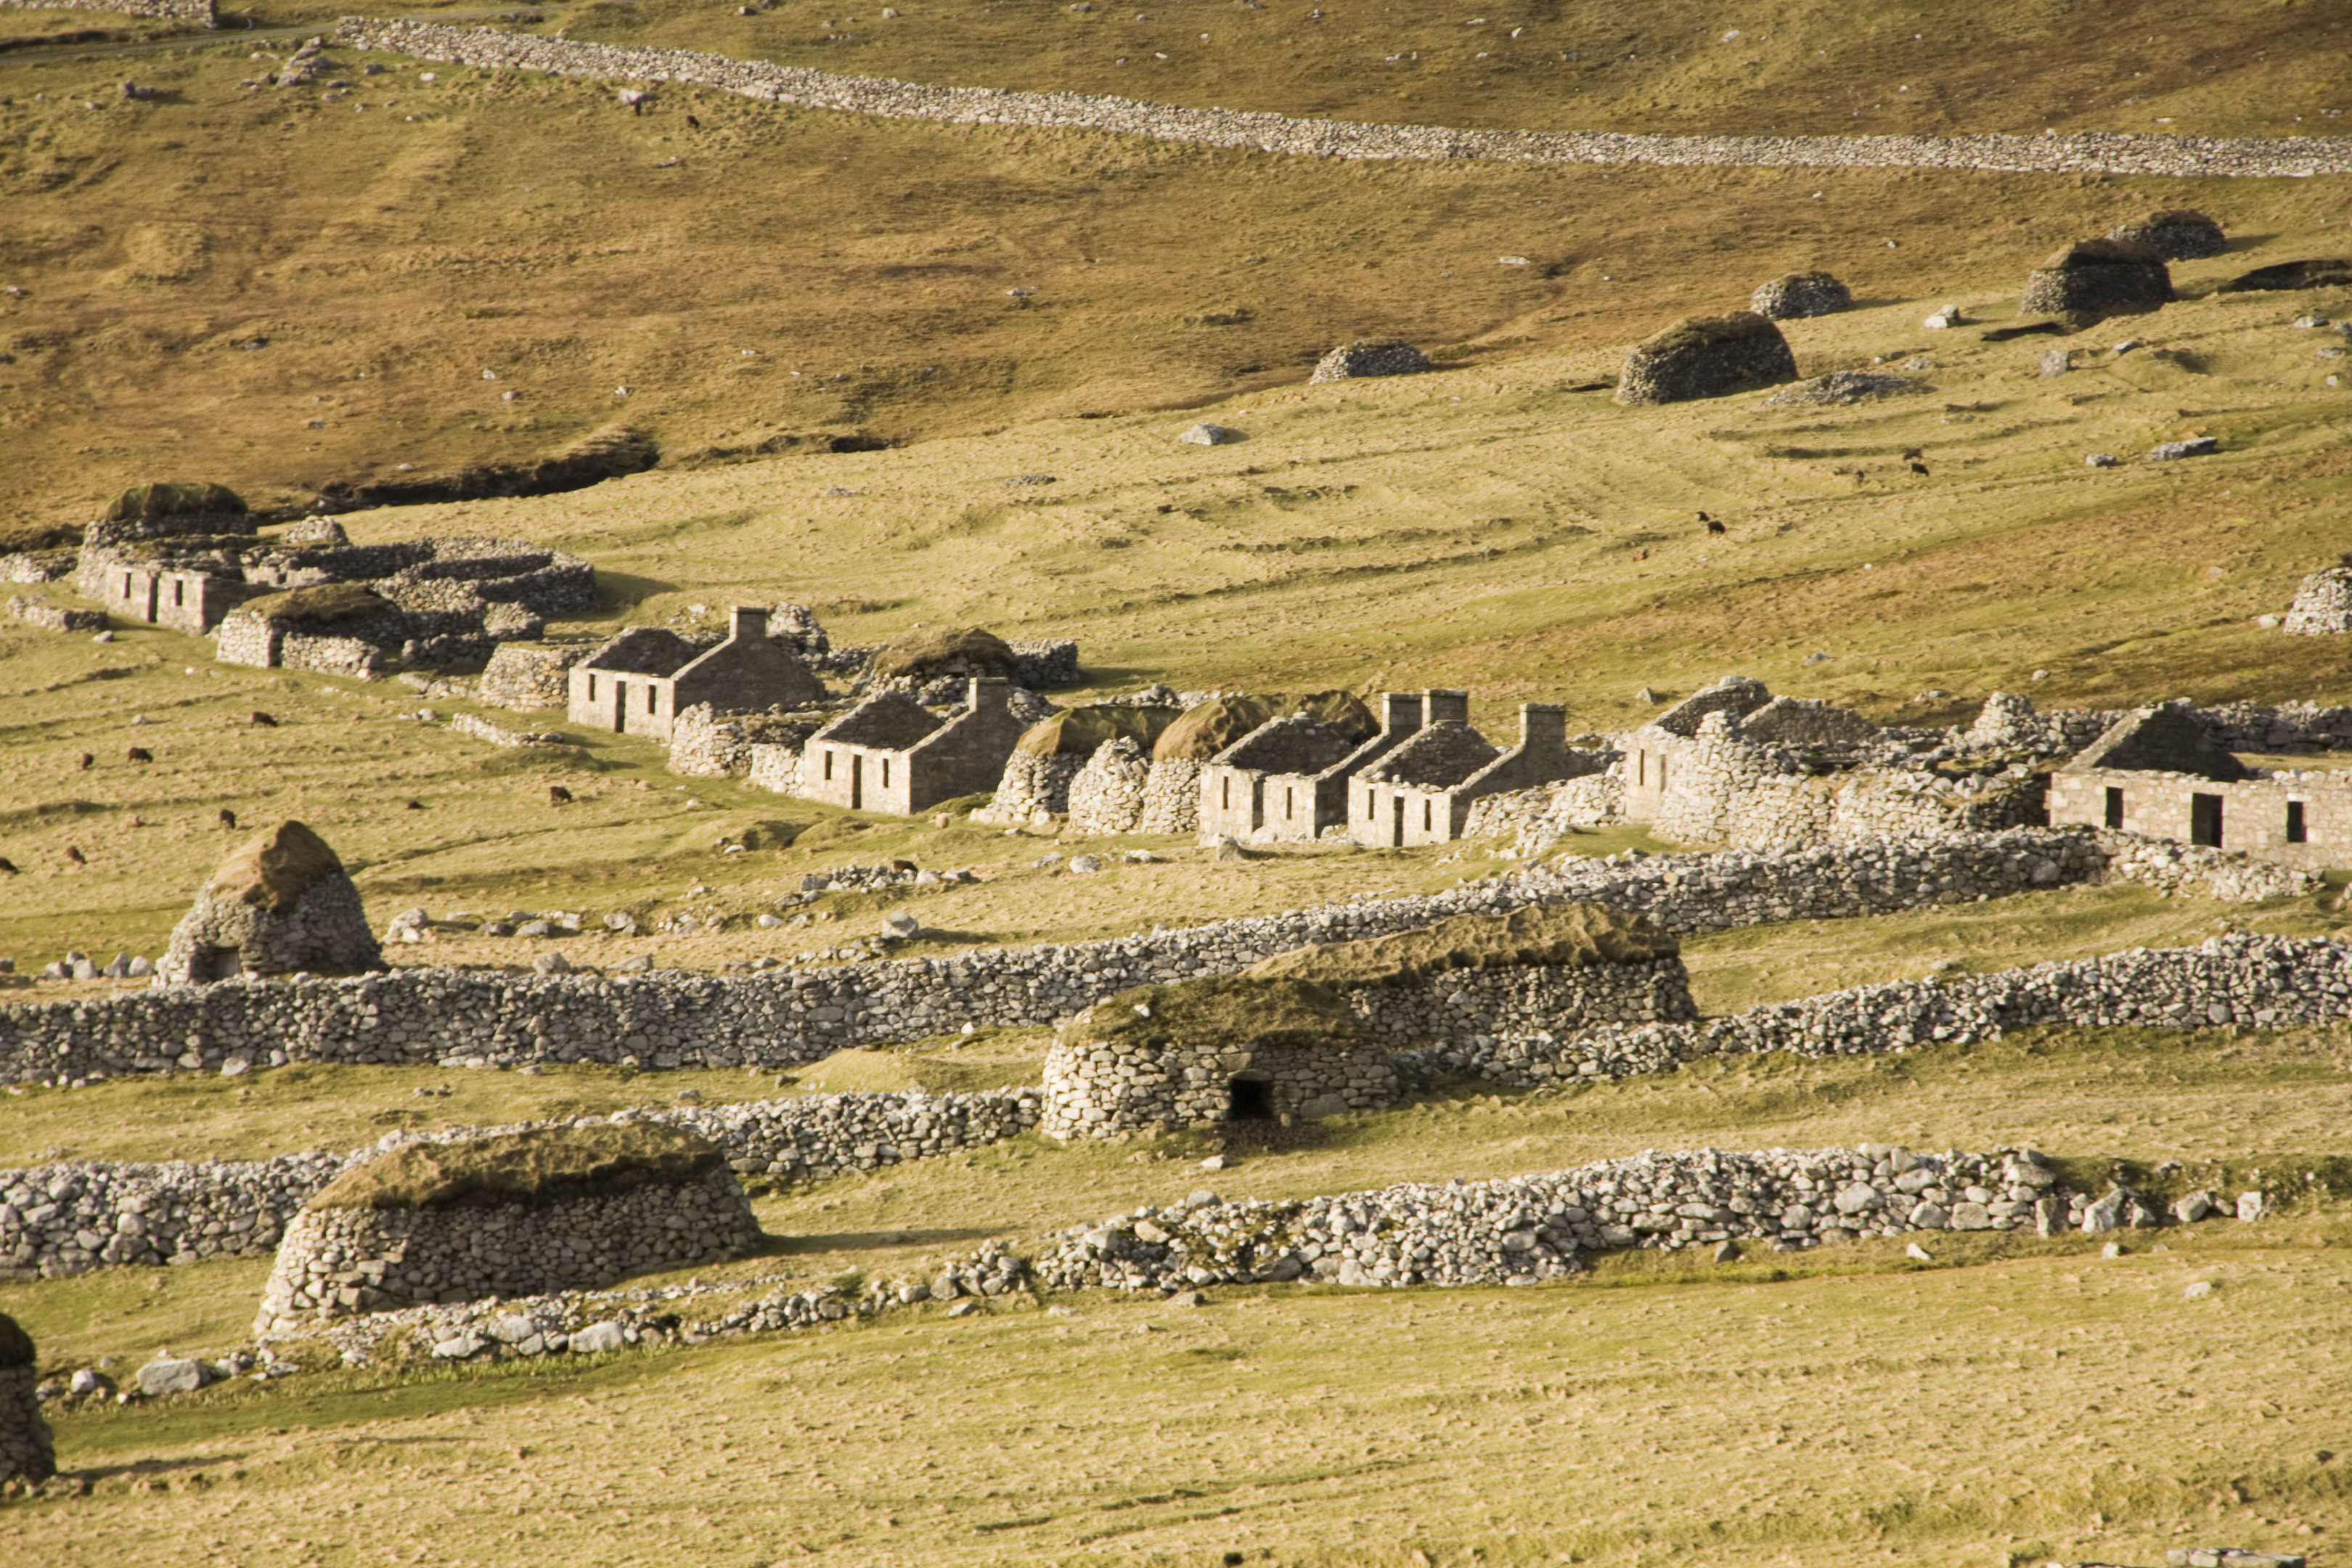 The National Trust for Scotland runs St Kilda, among other sites